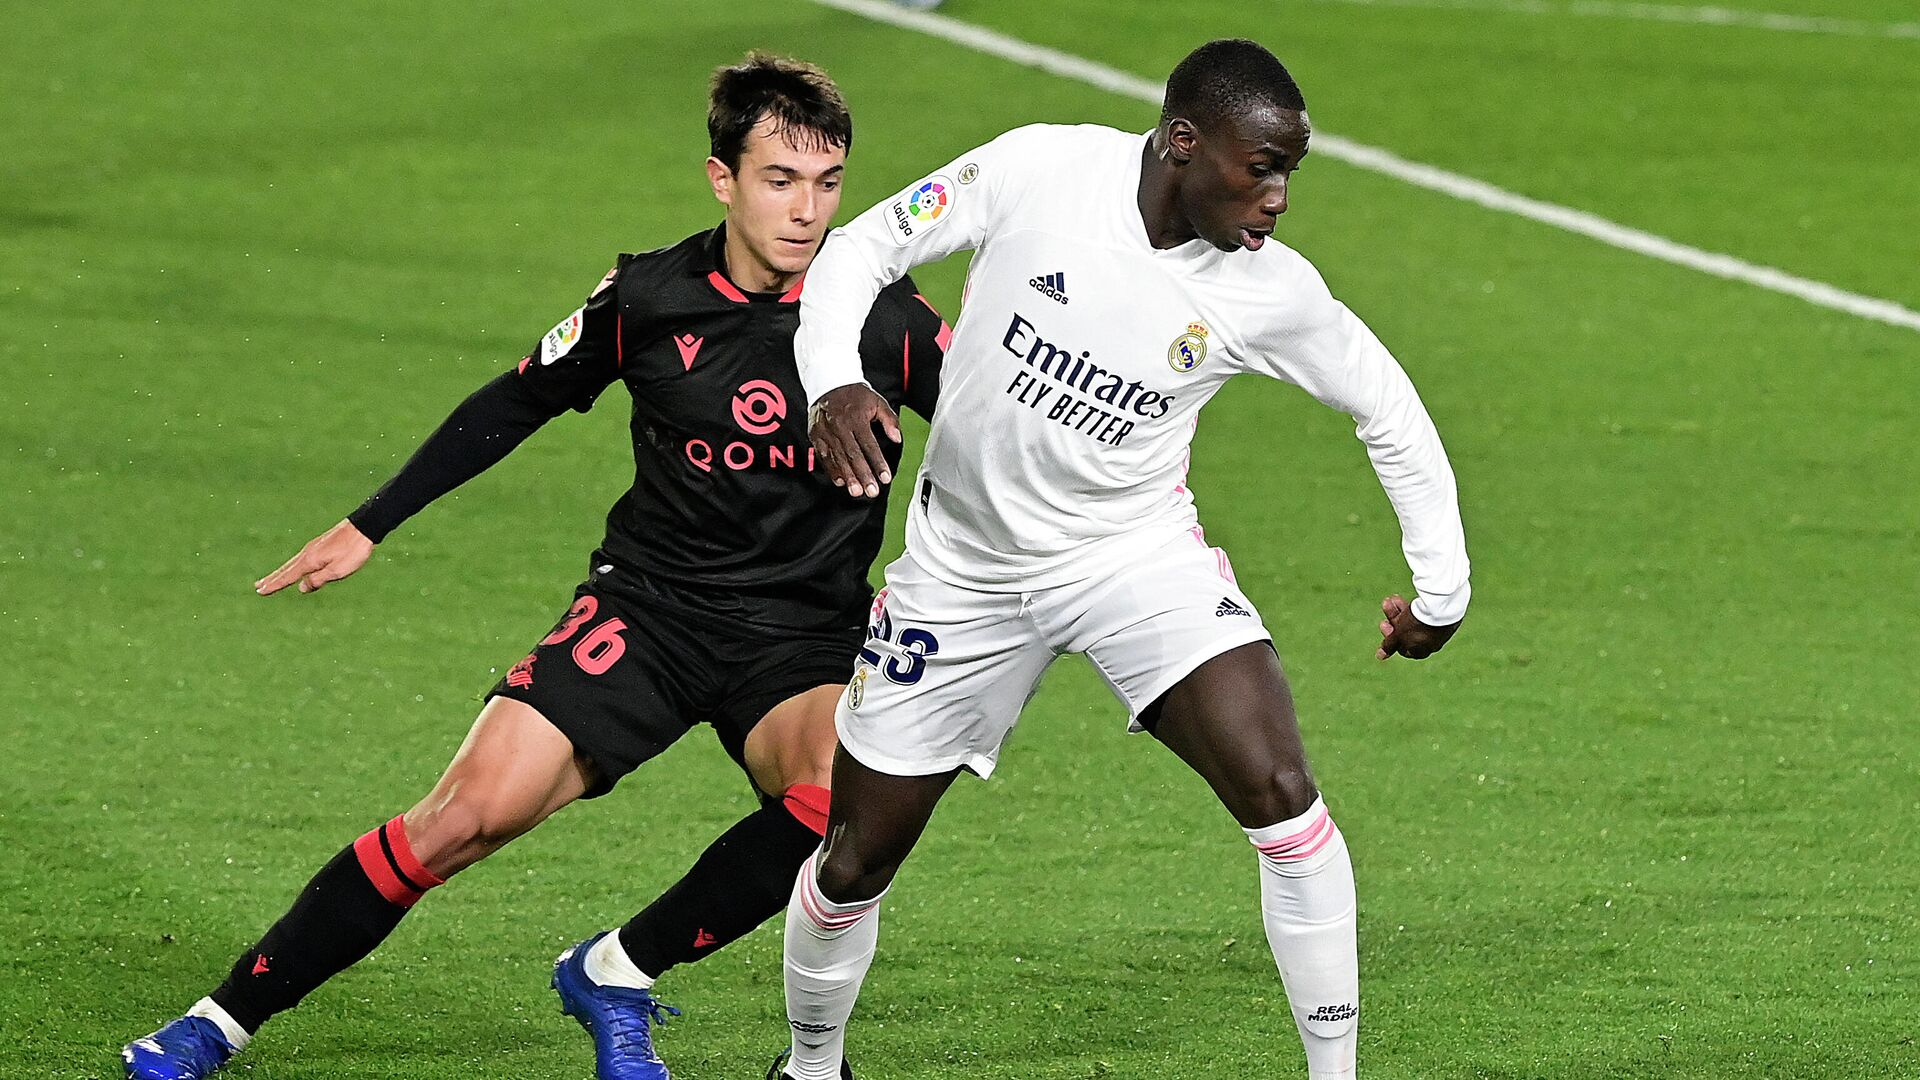 Real Sociedad's Spanish midfielder Martin Zubimendi (L) challenges Real Madrid's French defender Ferland Mendy during the Spanish league football match between Real Madrid CF and Real Sociedad at the Alfredo di Stefano stadium in Valdebebas, on the outskirts of Madrid on March 1, 2021. (Photo by JAVIER SORIANO / AFP) - РИА Новости, 1920, 02.03.2021